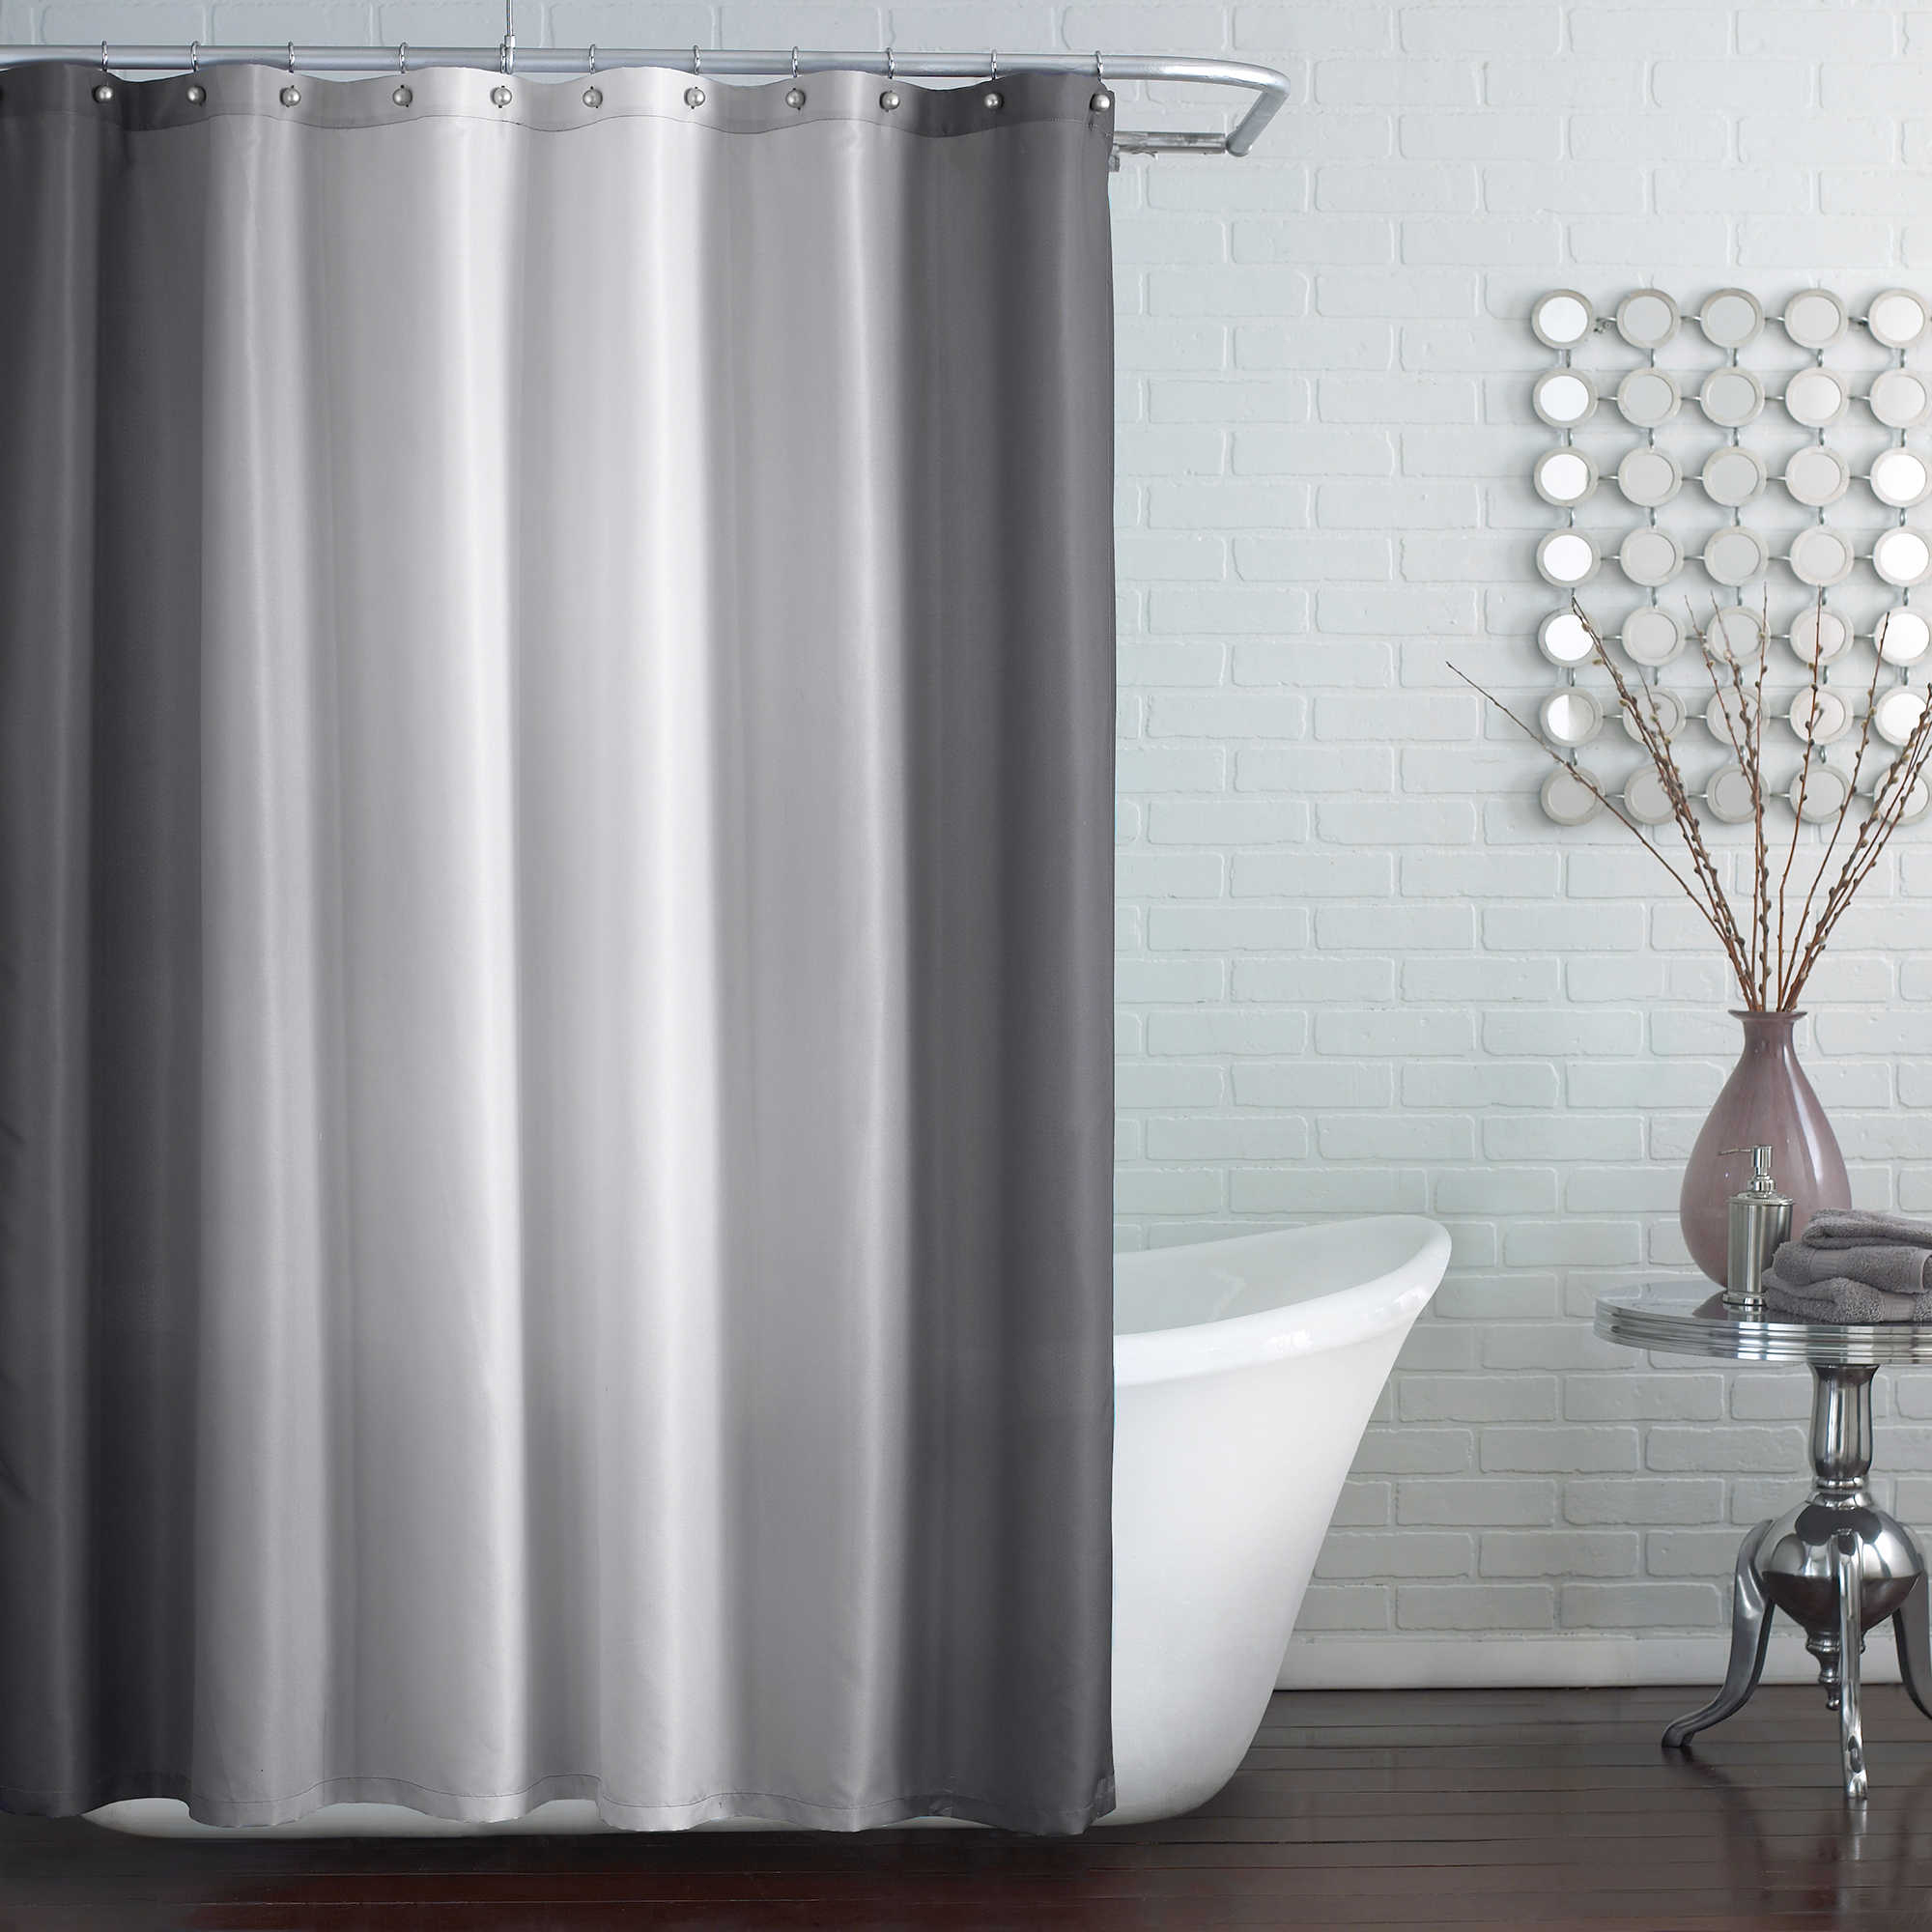 Extra Long Shower Curtain Liners Shower Ideas inside proportions 2000 X 2000